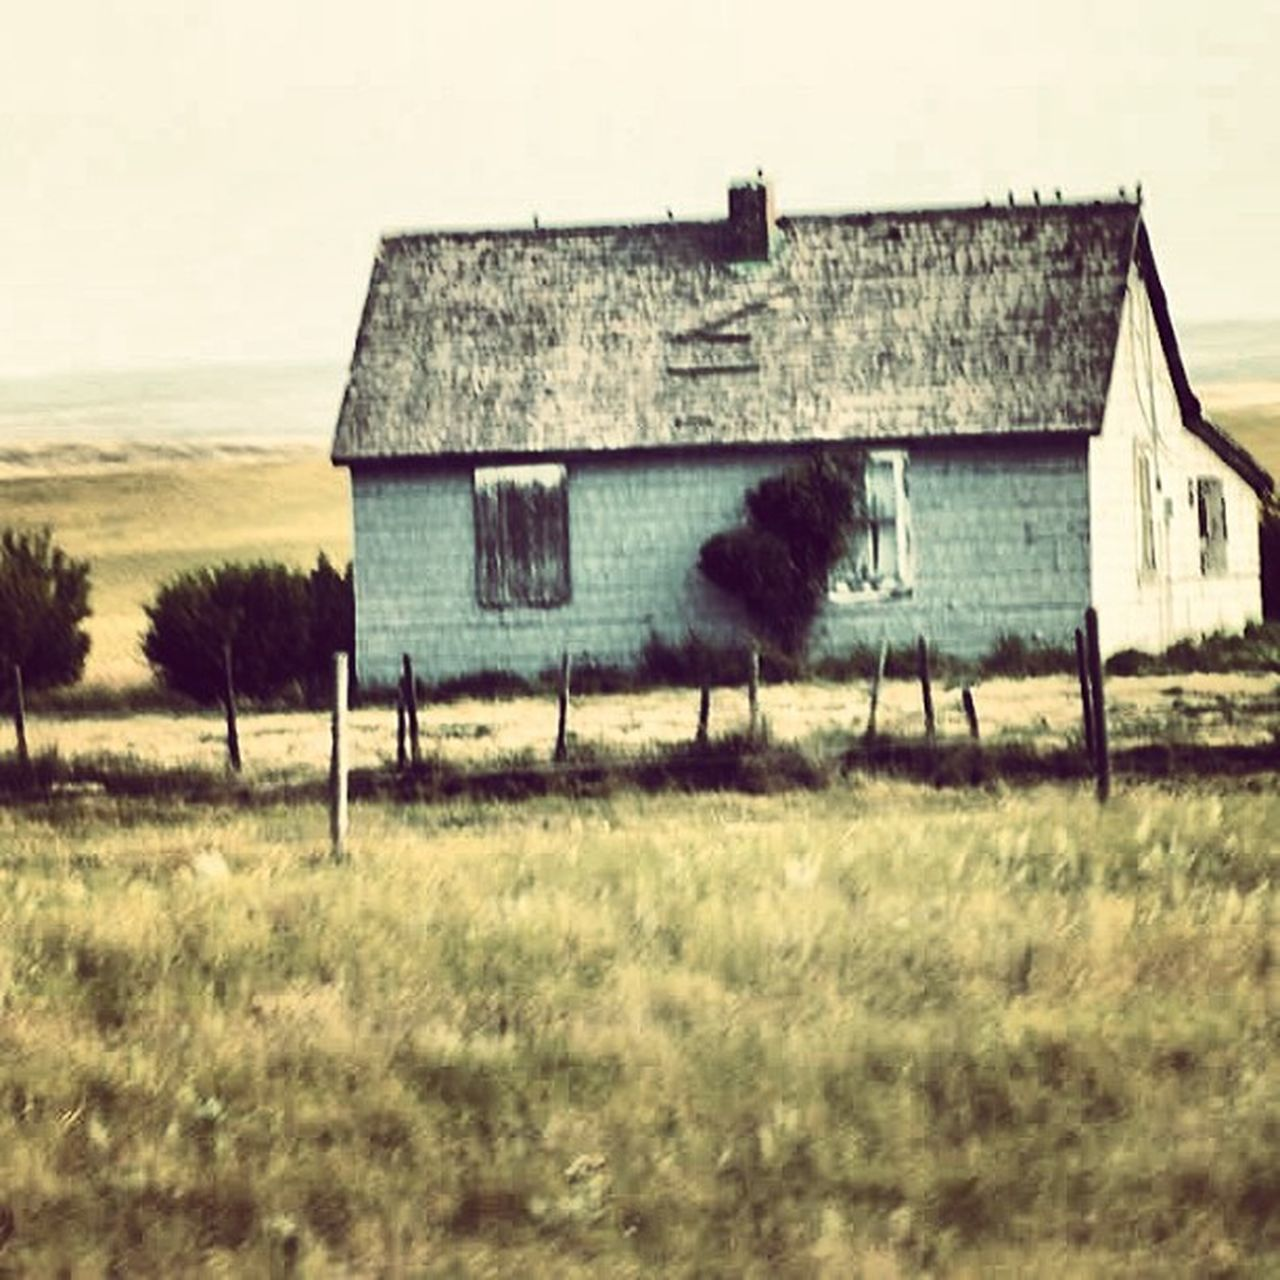 architecture, built structure, building exterior, house, old, abandoned, hut, run-down, outdoors, grass, no people, weathered, old-fashioned, roof, barn, spooky, day, farmhouse, sky, prison, film industry